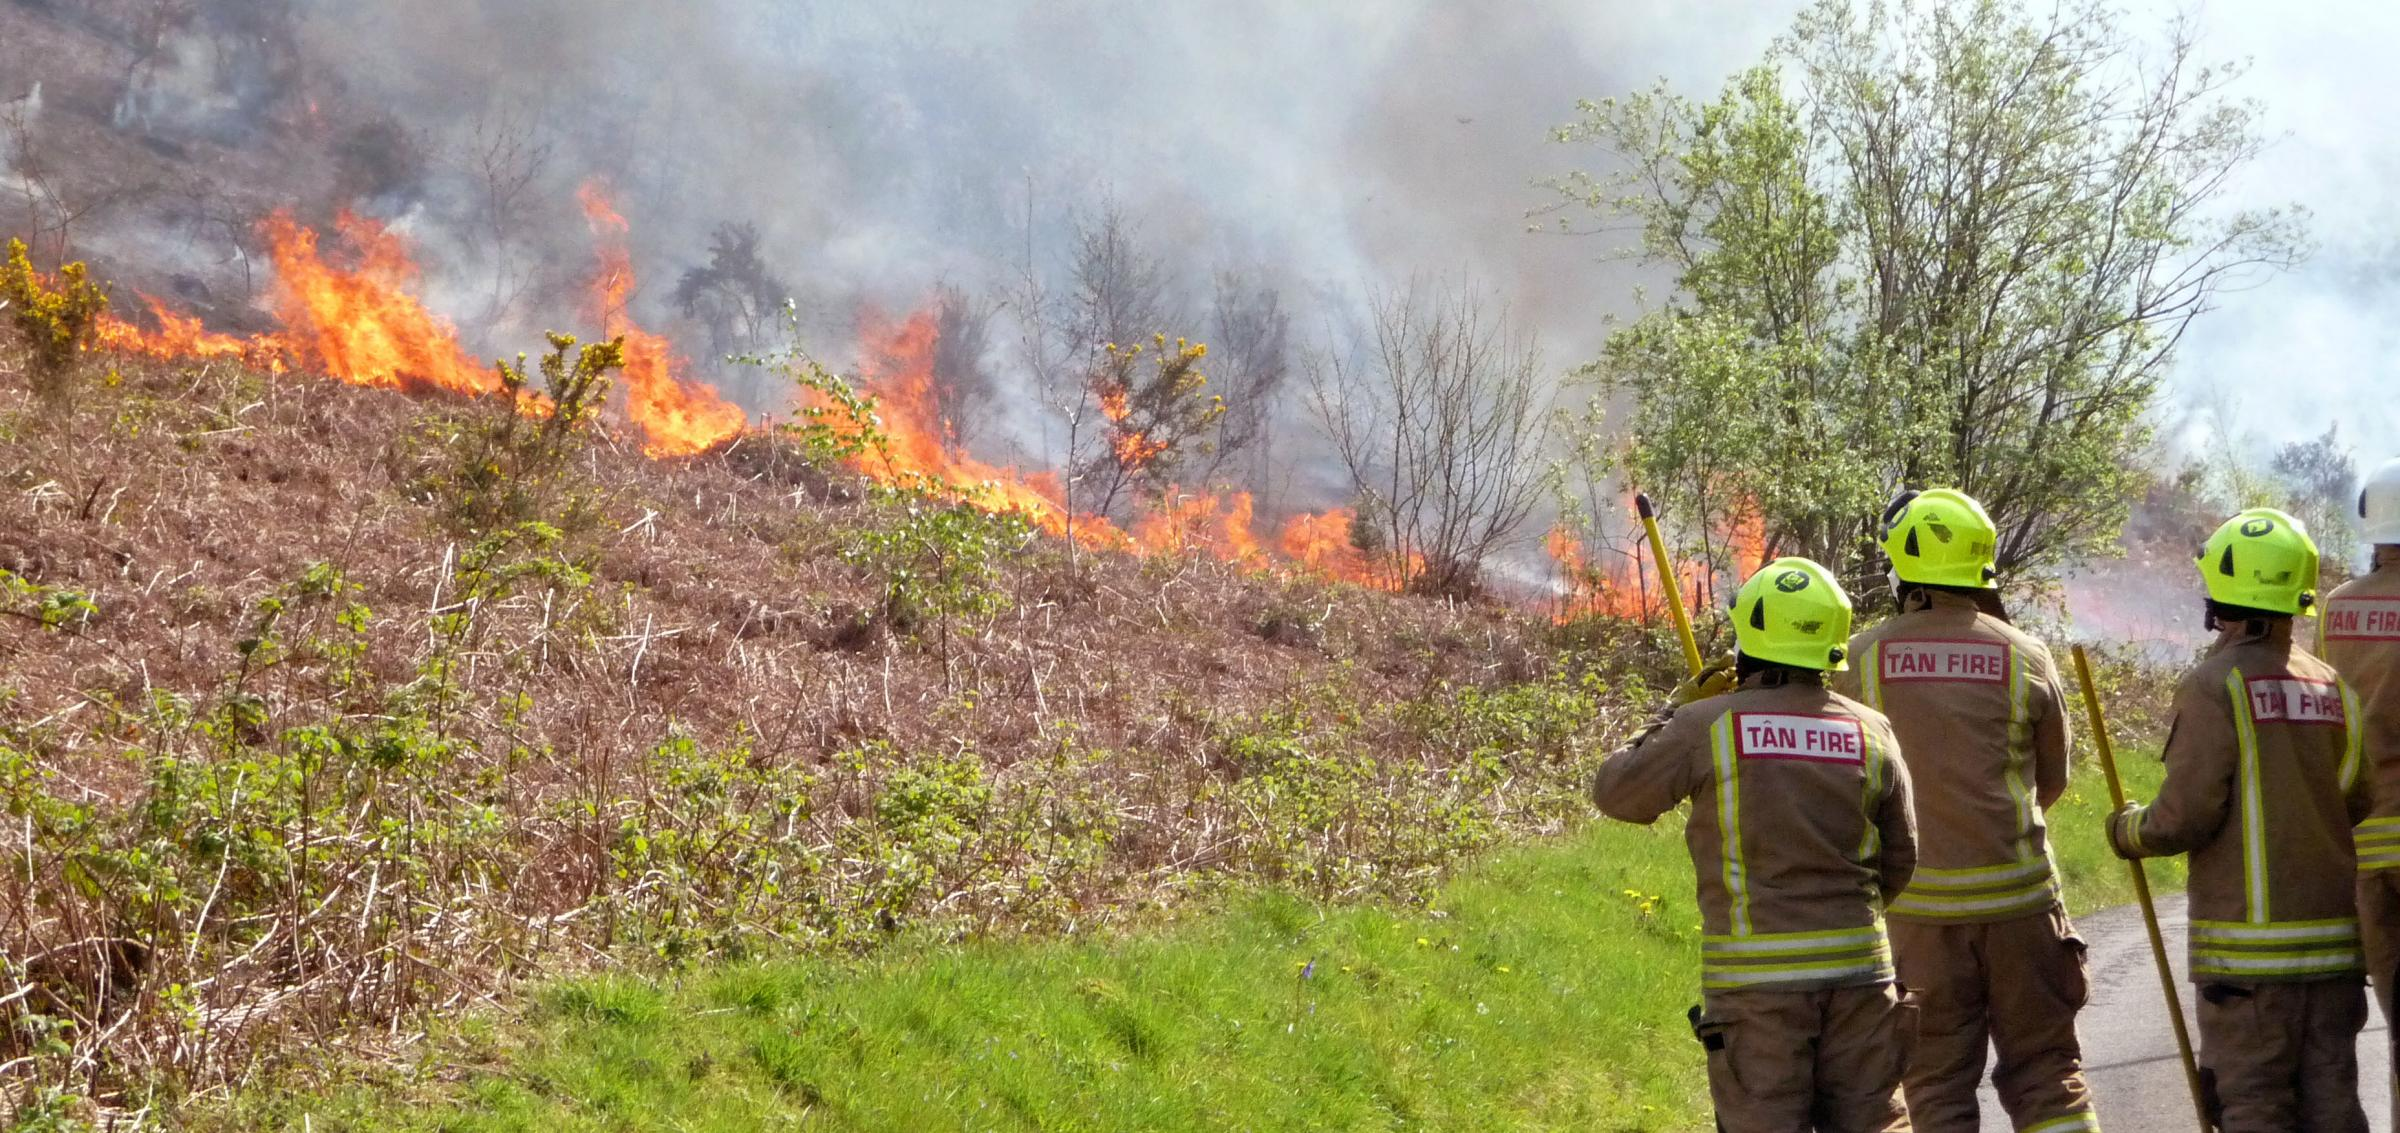 Firefighters called to deliberate grass fire near Ammanford